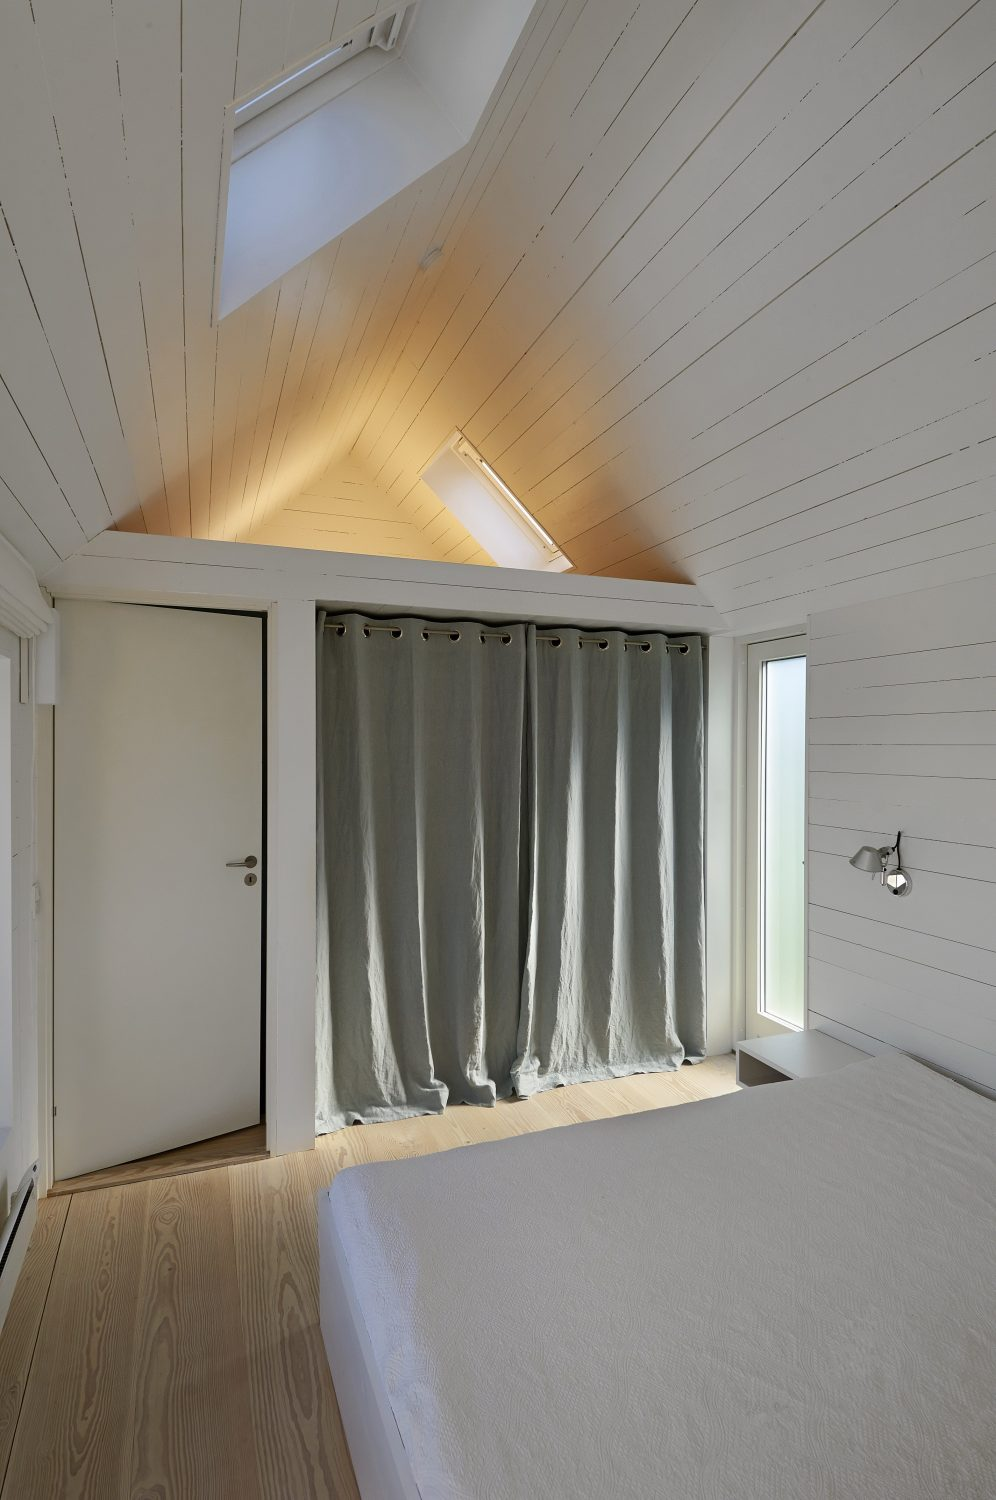 Summerhouse in Denmark by JVA